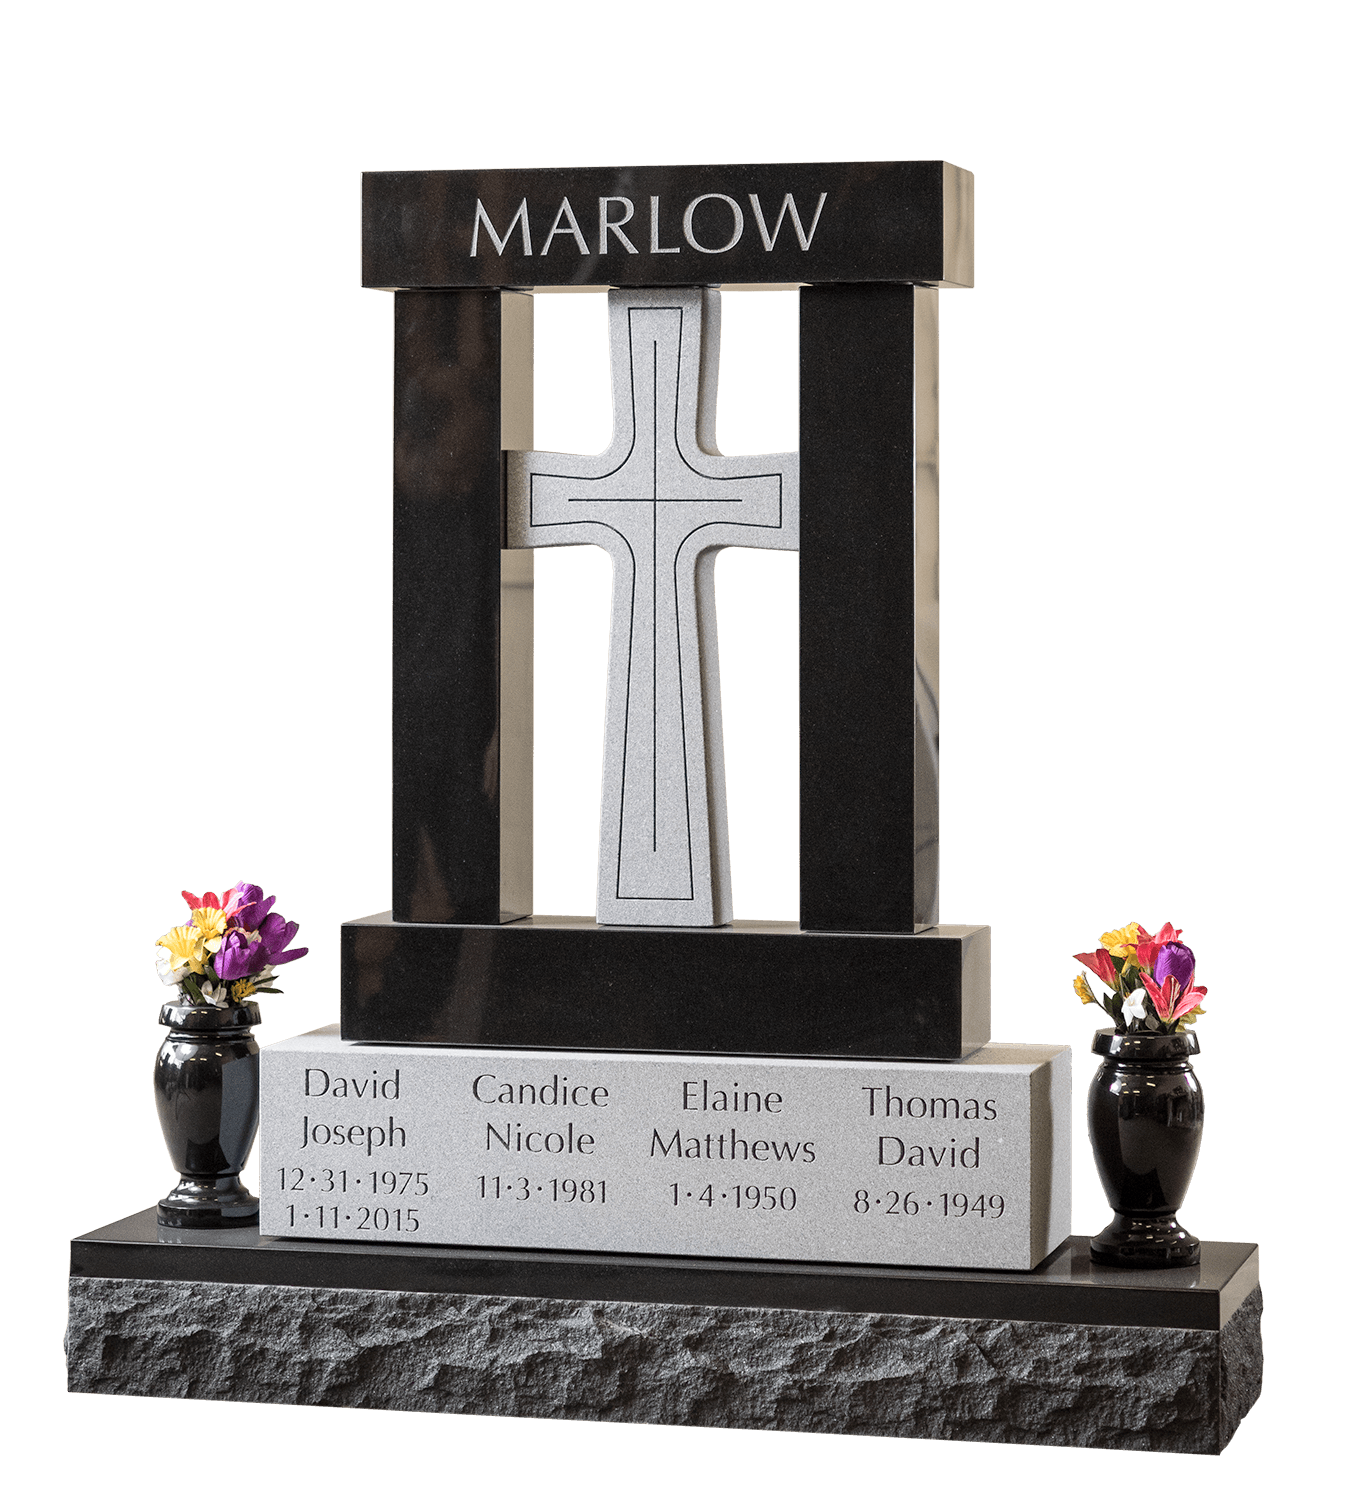 Marlow, Candice - Monument.png